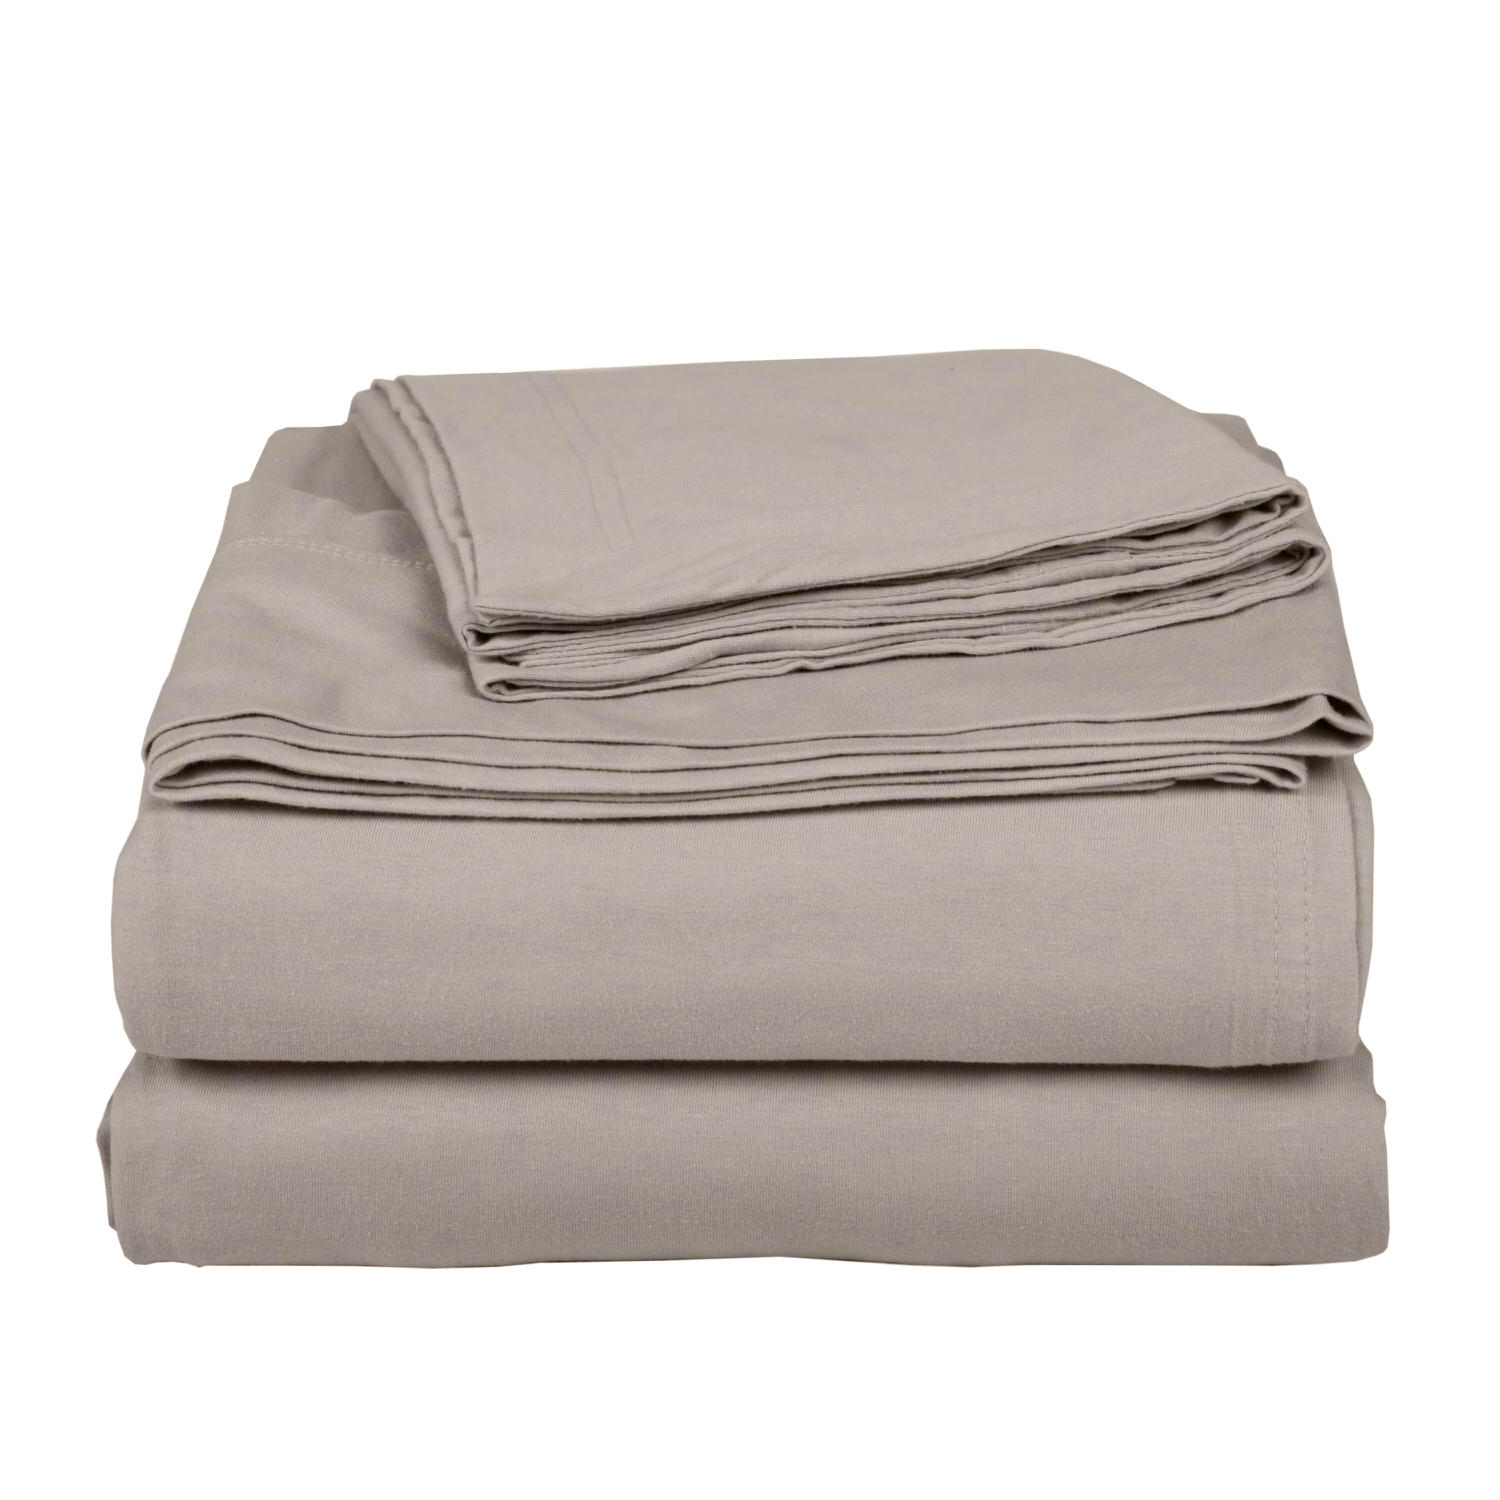 Cotton Beige Bed Sheet Set